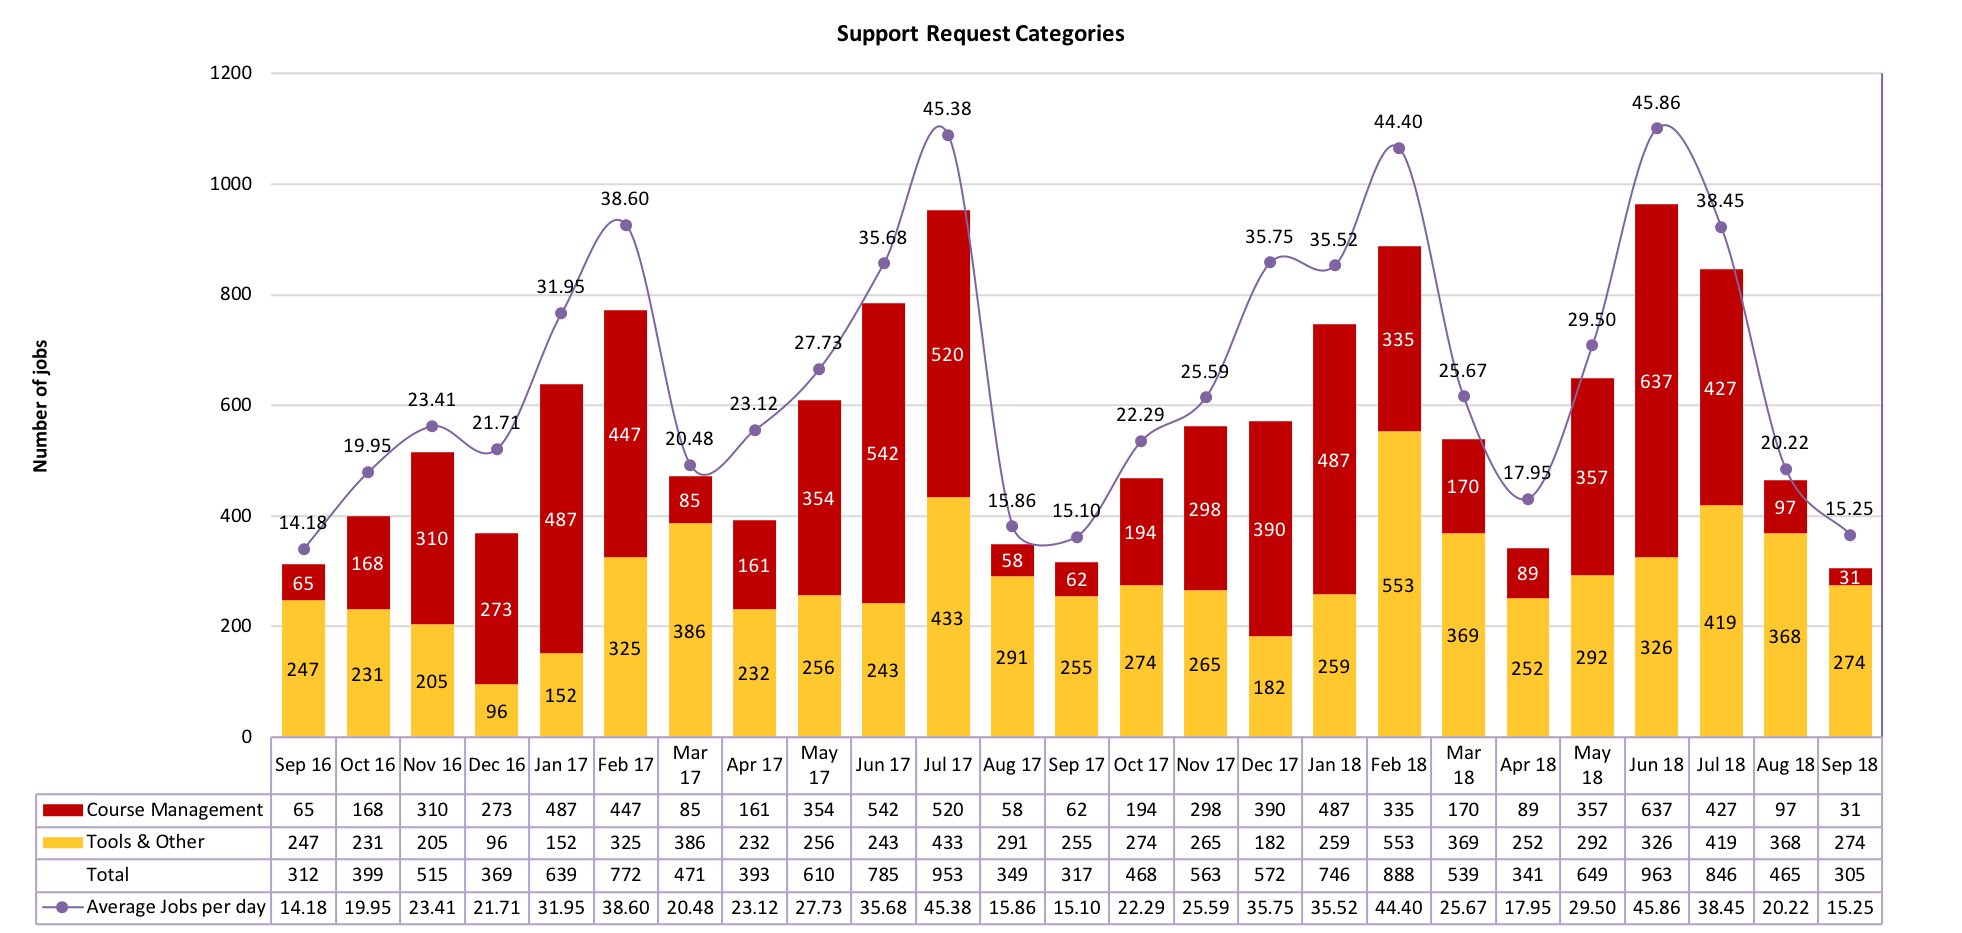 Chart of Support Request Categories from September 2016 to September 2018